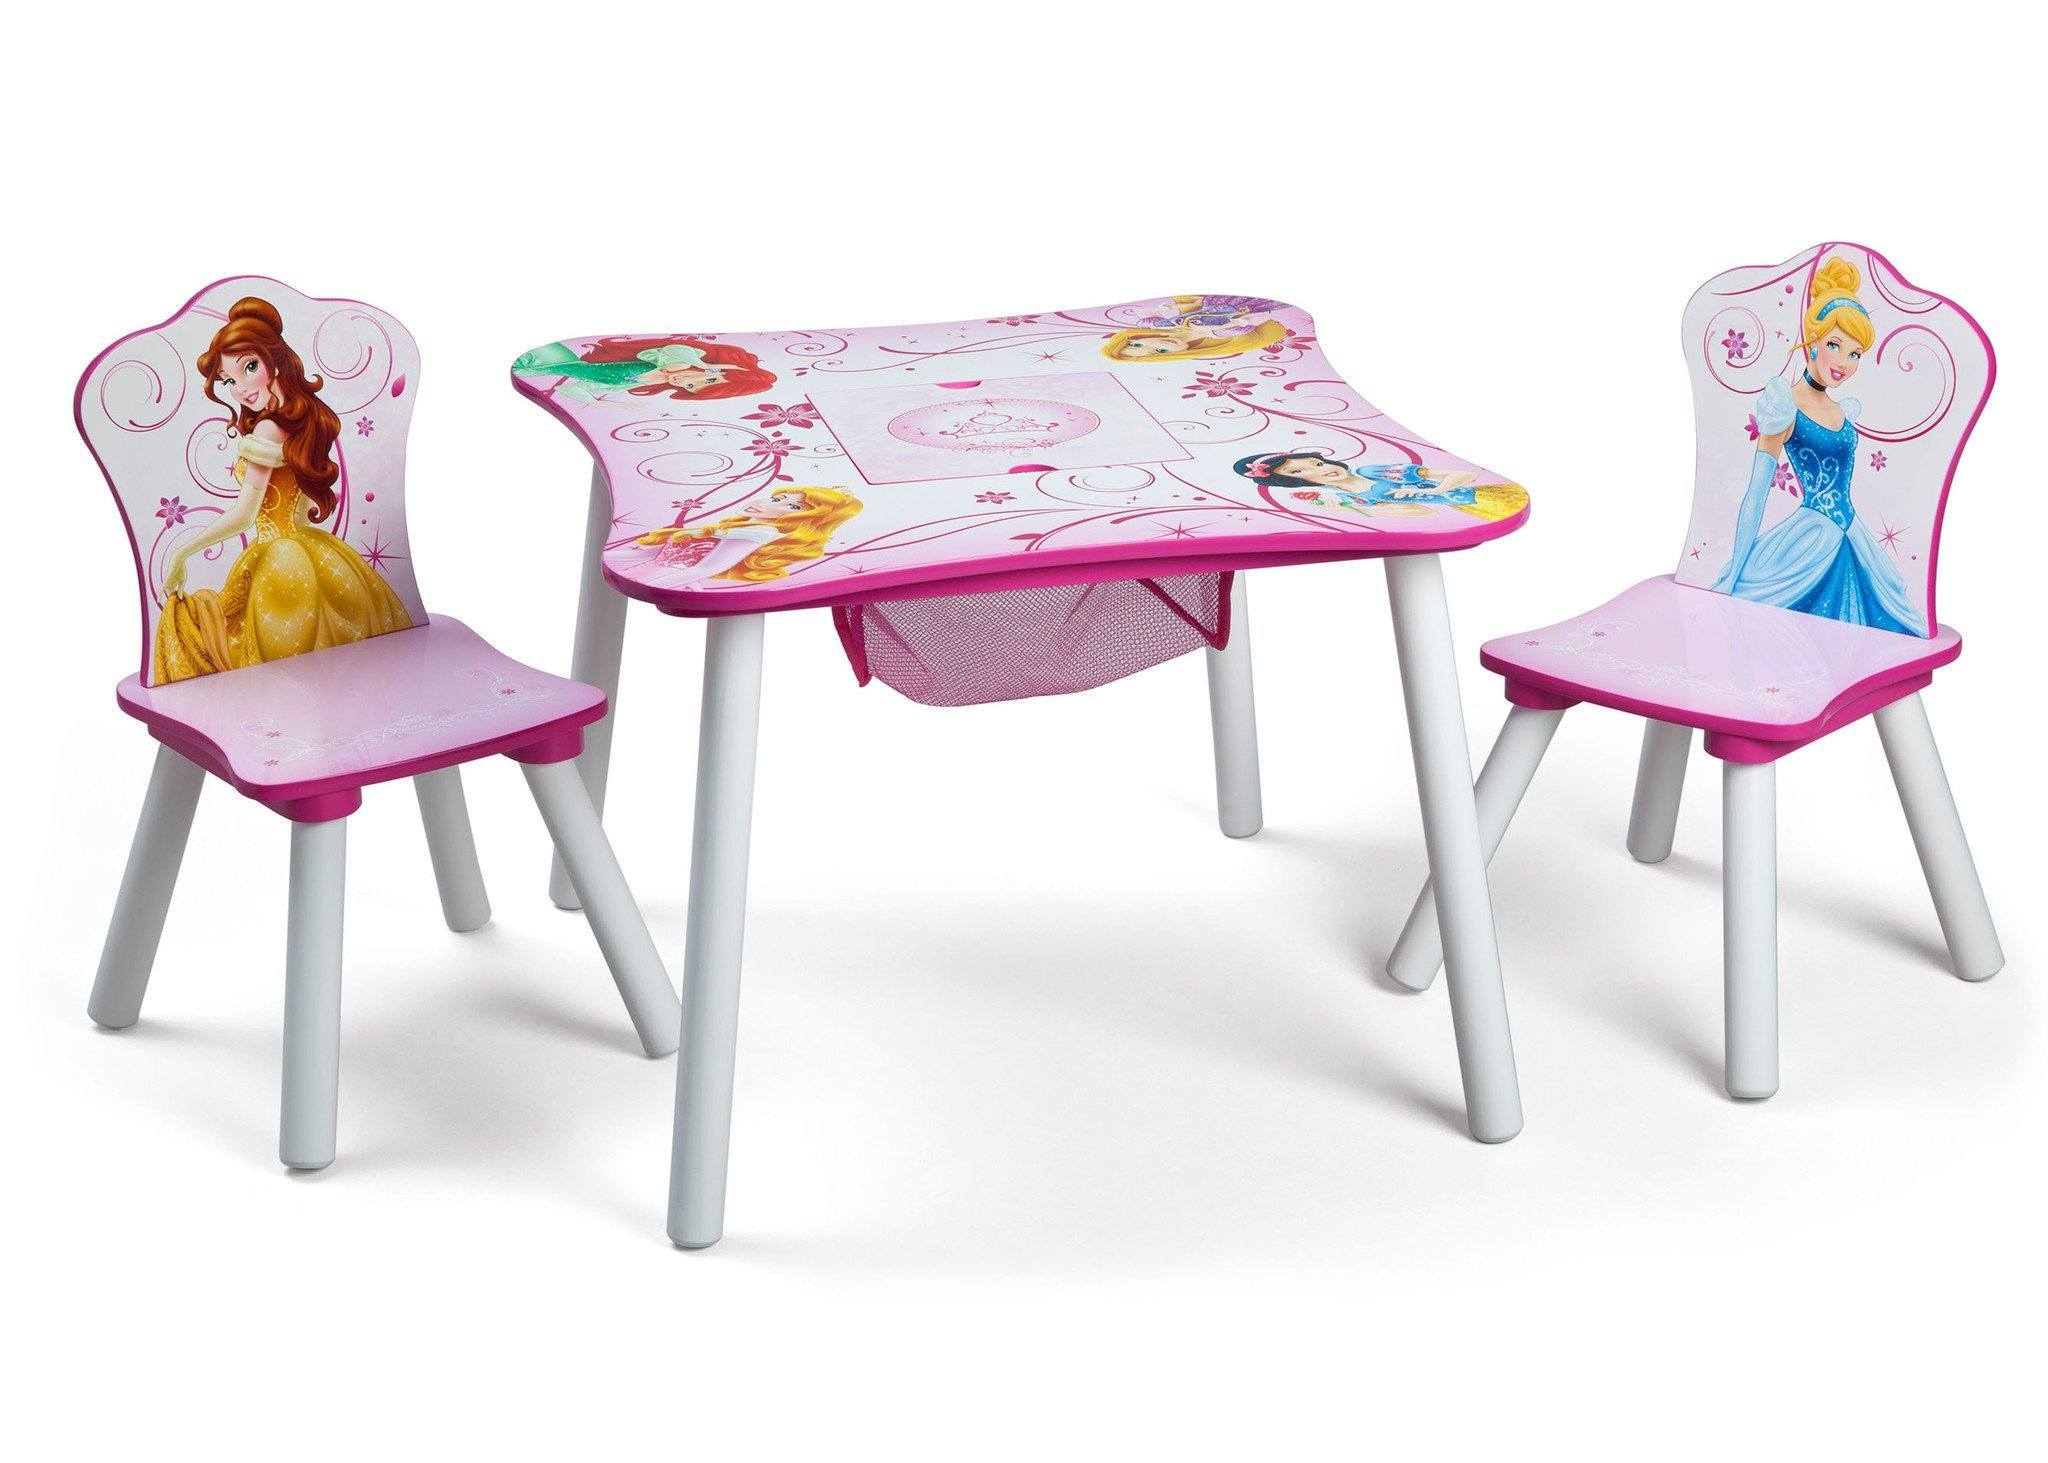 Delta Children Princess Table and Chair Set with Storage Right View a1a ...  sc 1 st  Delta Children & Princess Table \u0026 Chair Set with Storage | Delta Children